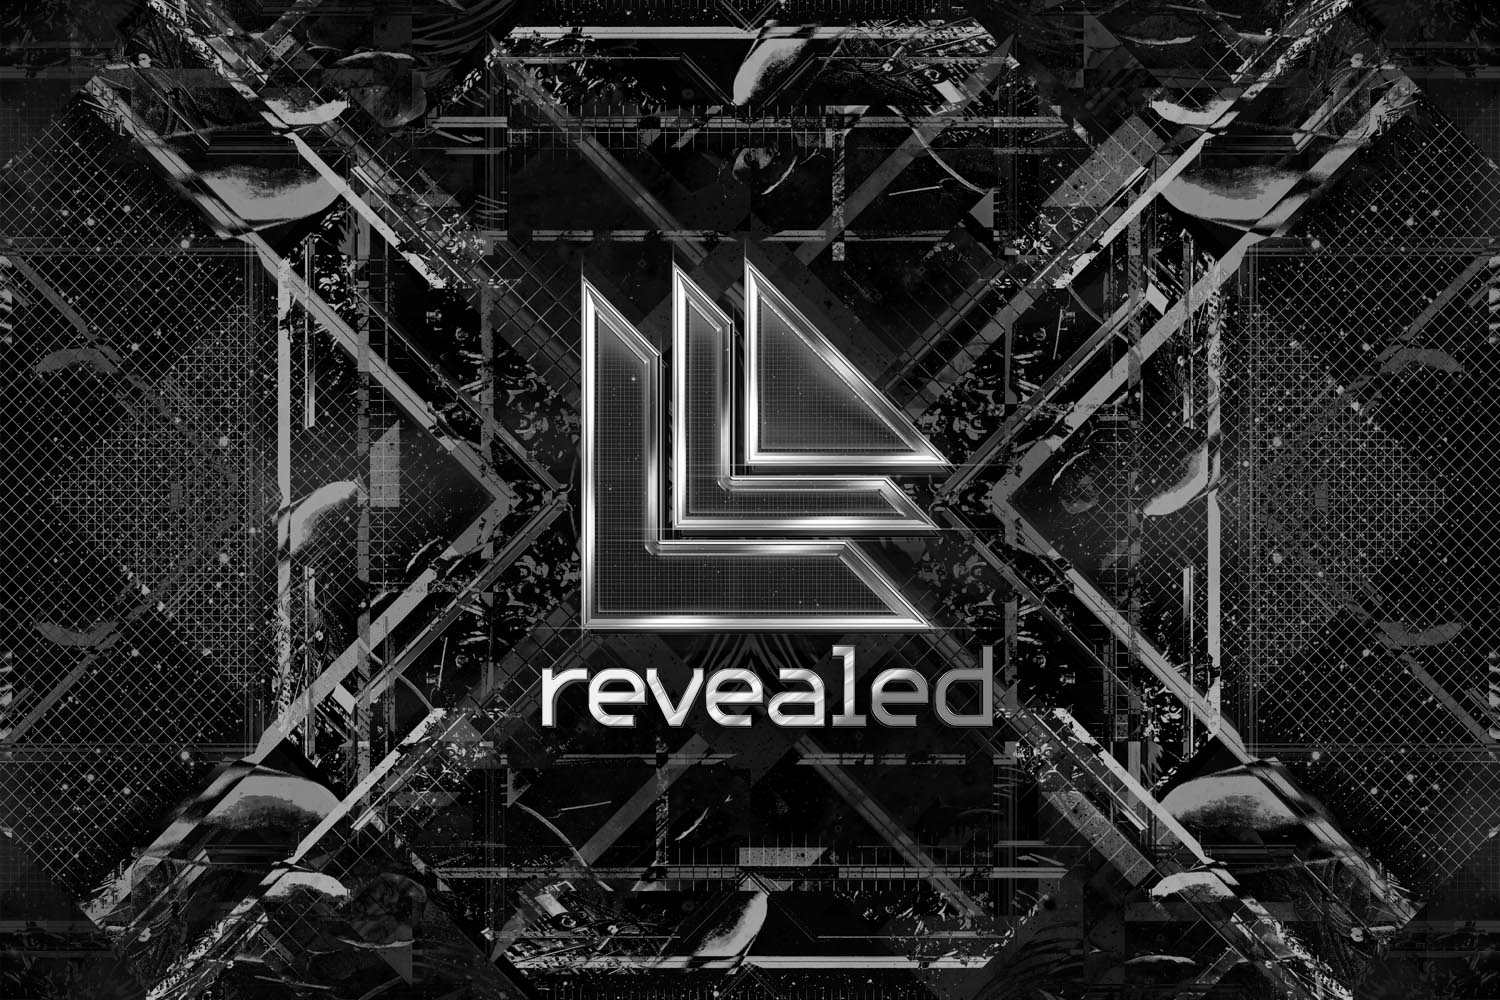 Revealed Recordings Announce Two Shows At USHUAÏA Ibiza Ahead Of Hardwell Residency